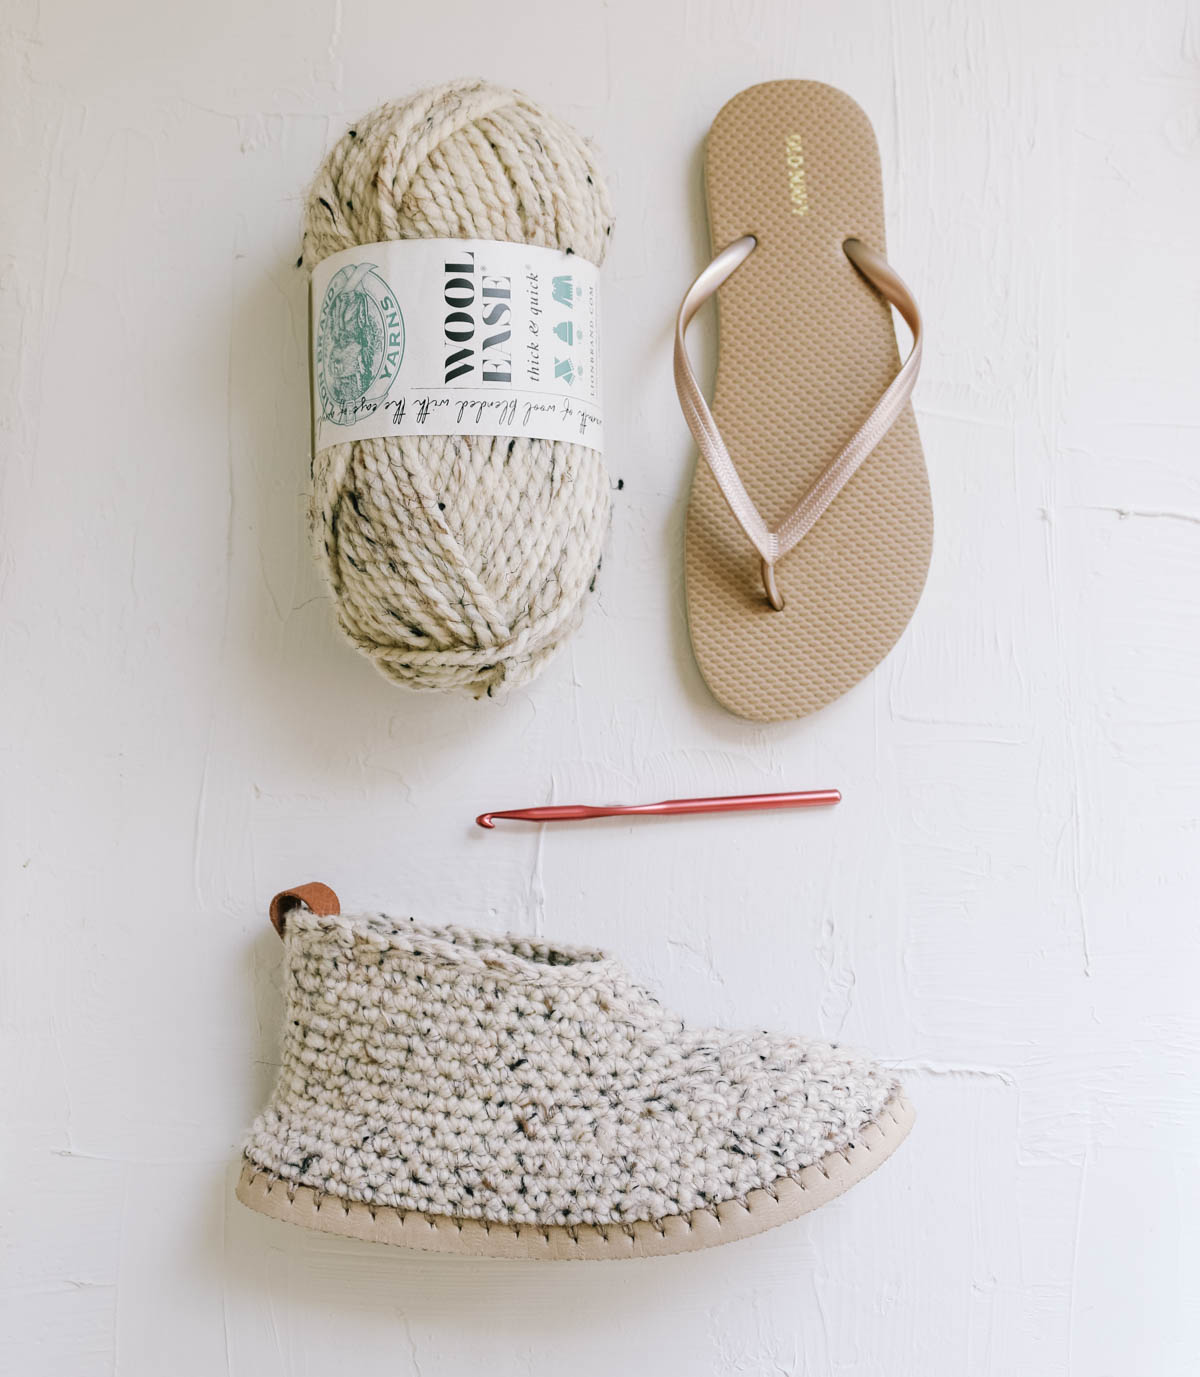 Crochet chukka slippers made with a flip flop sole and Lion Brand Wool-Ease Thick & Quick yarn.